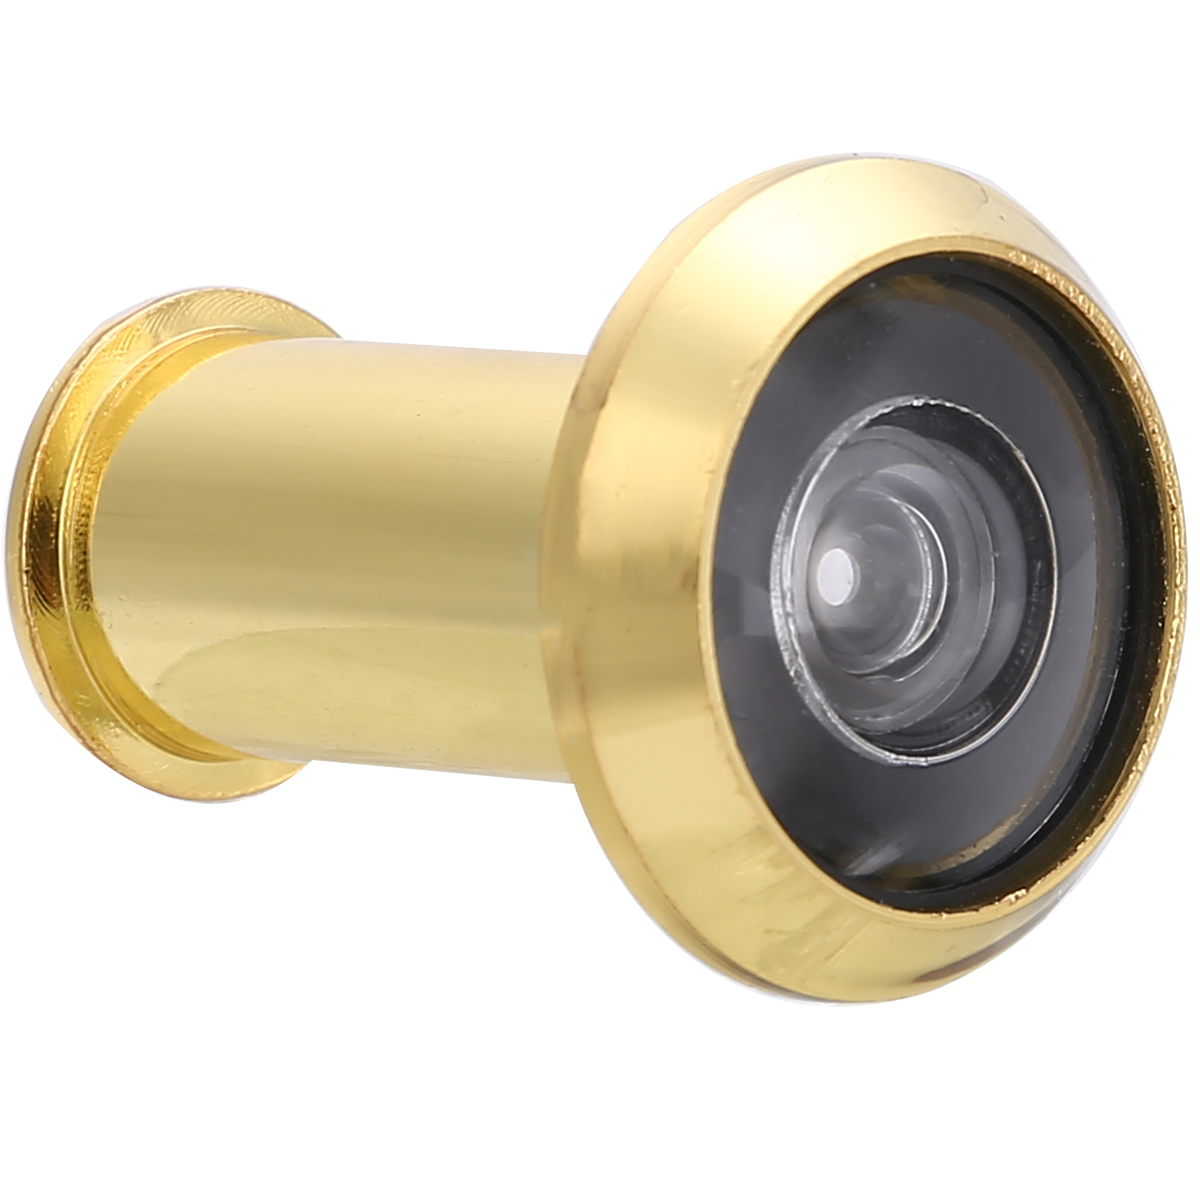 Adjustable 180 Degree Wide Angle Door Viewer Brass Scope Peephole/'Home Security